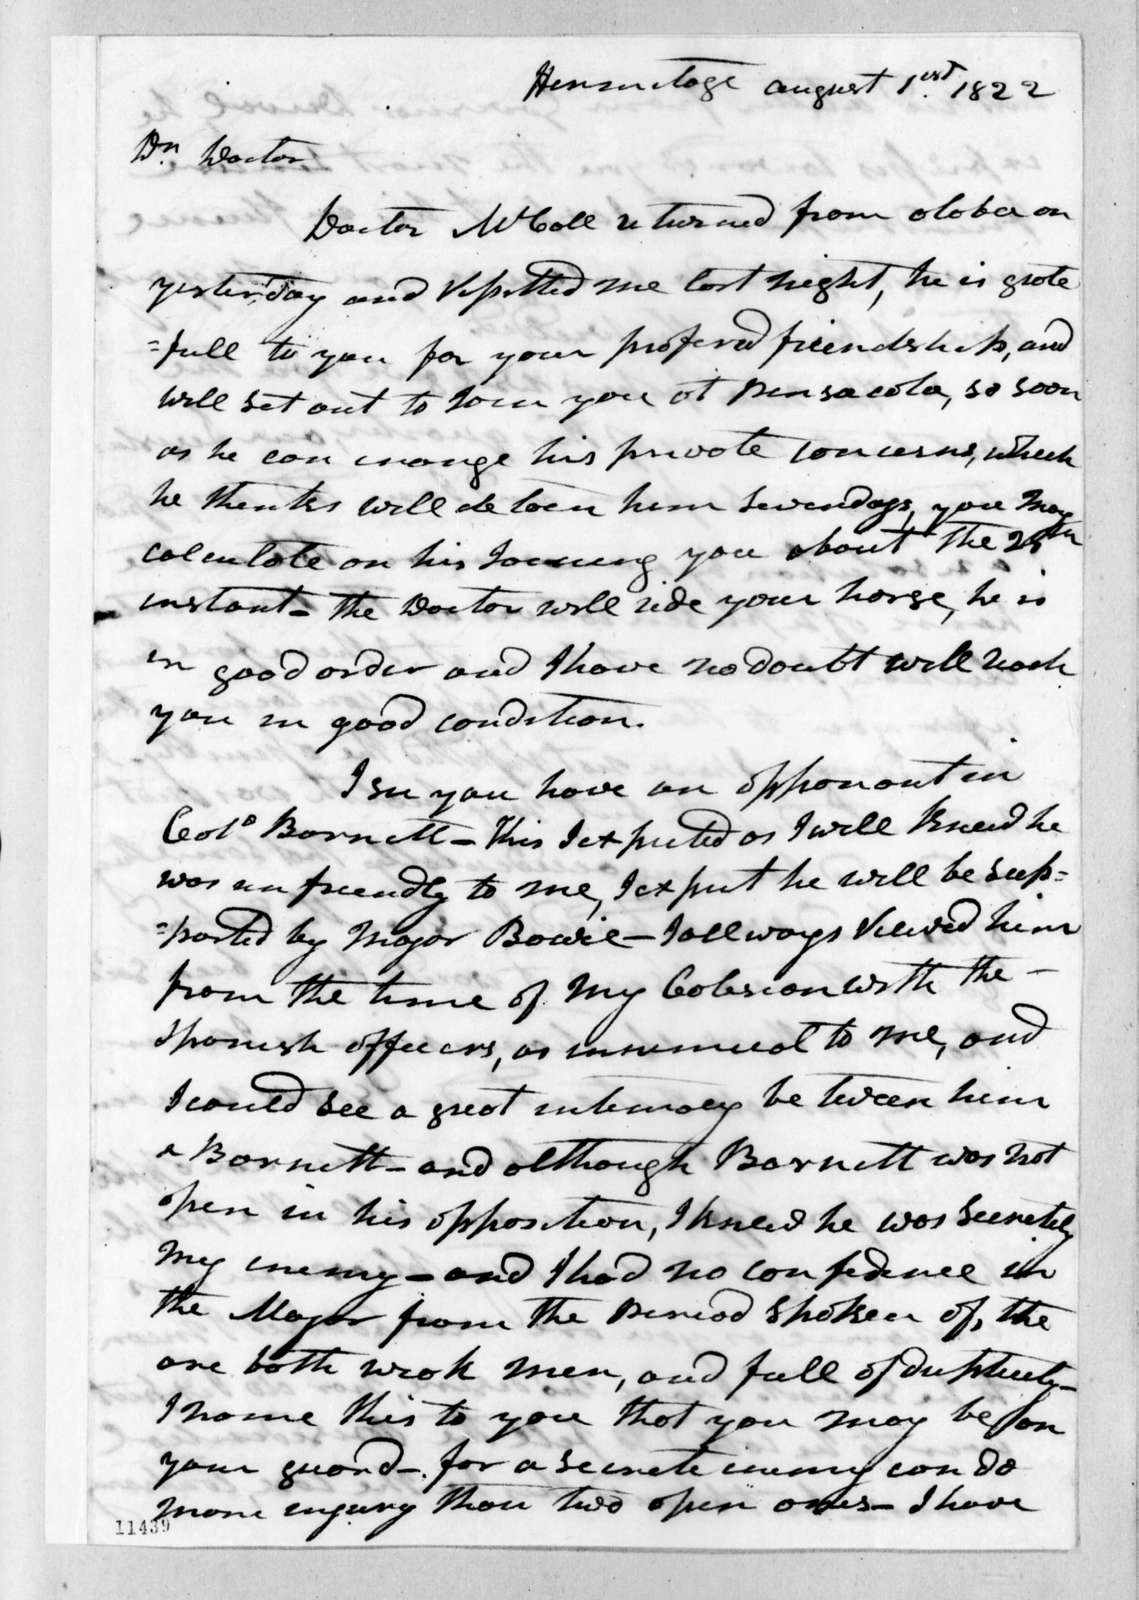 Andrew Jackson to James Craine Bronaugh, August 1, 1822